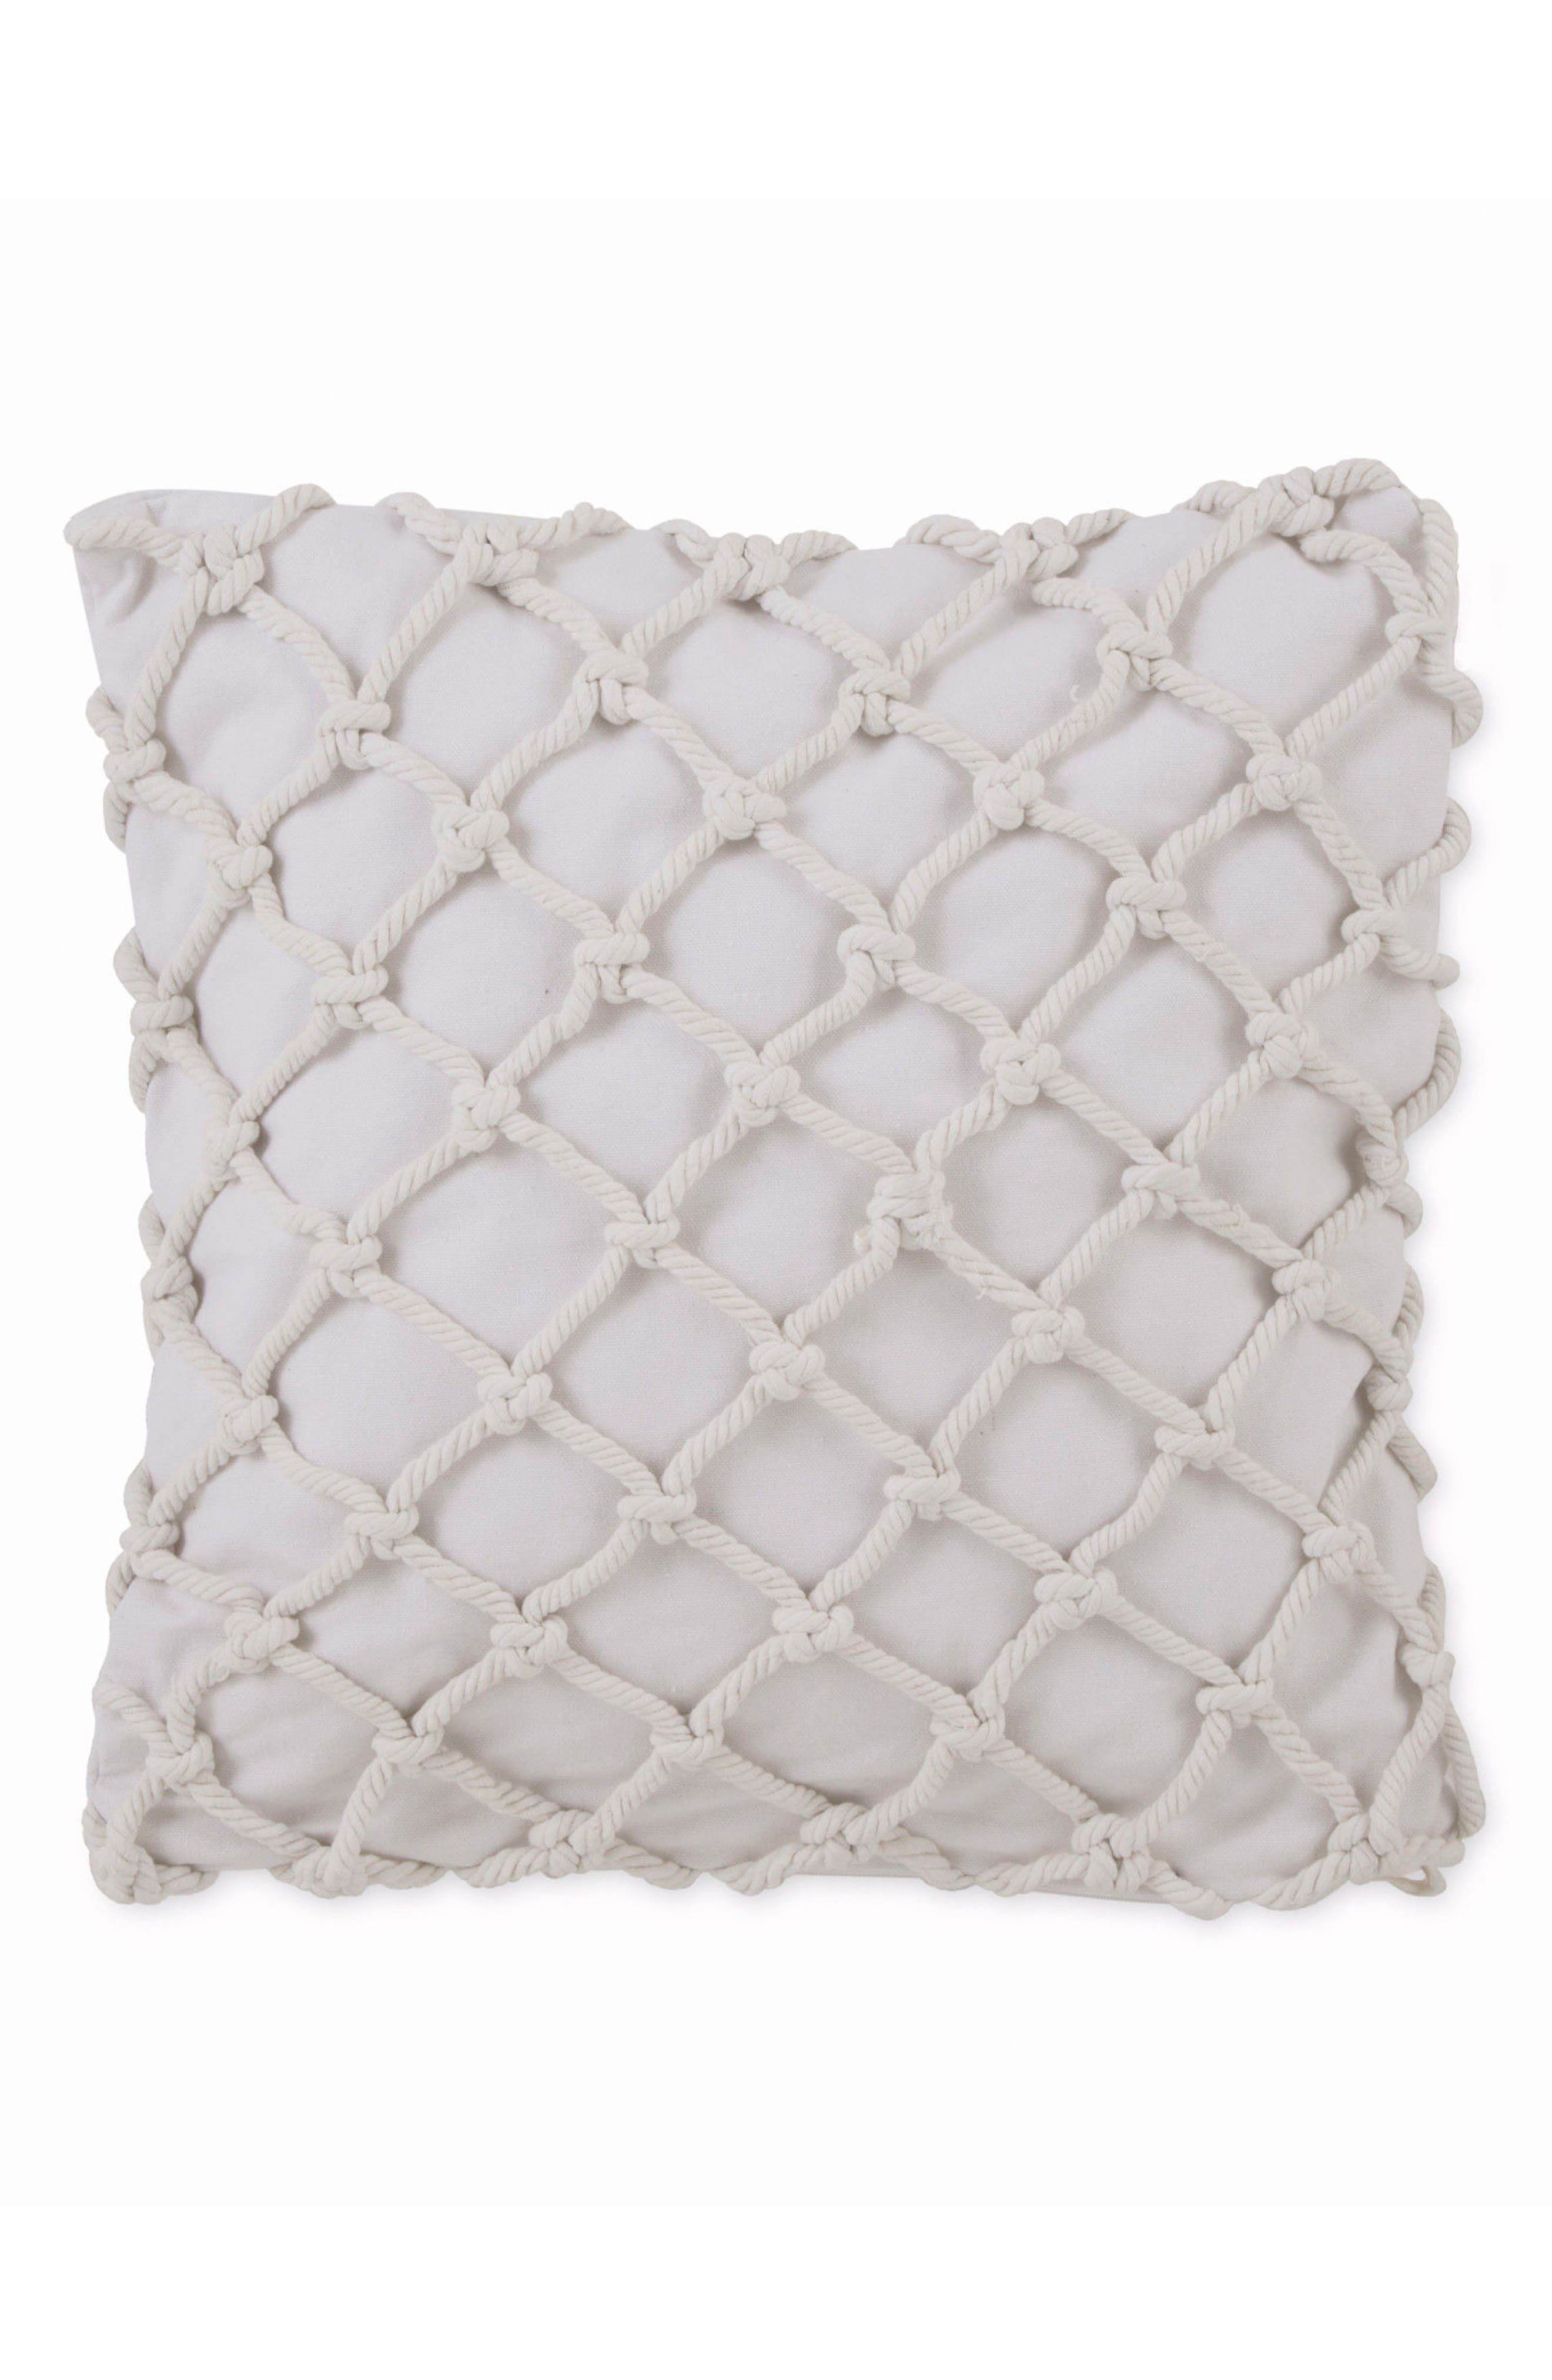 Knotted Rope Square Accent Pillow,                         Main,                         color, 100